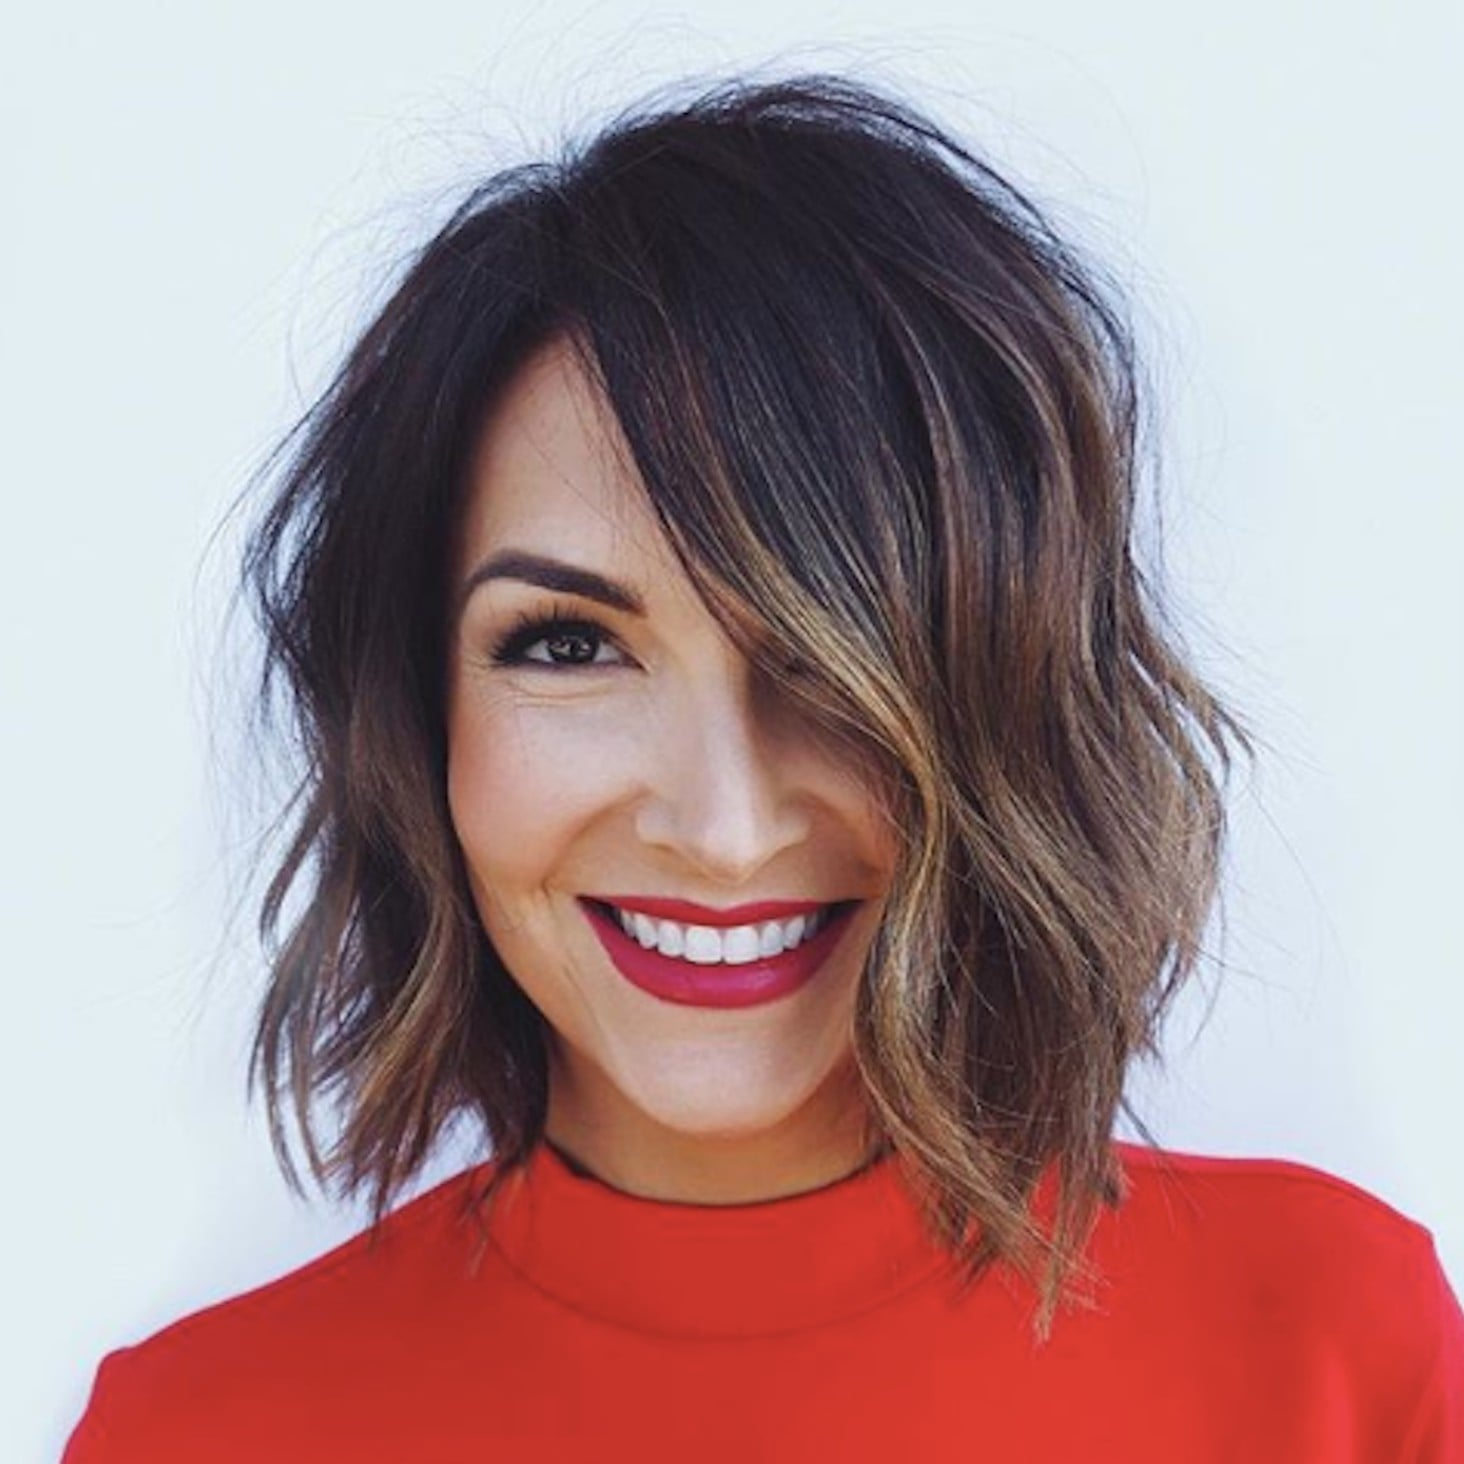 Jaw-Length-Messy-Bob Bob Haircuts 2019 for an Outstanding Appearance